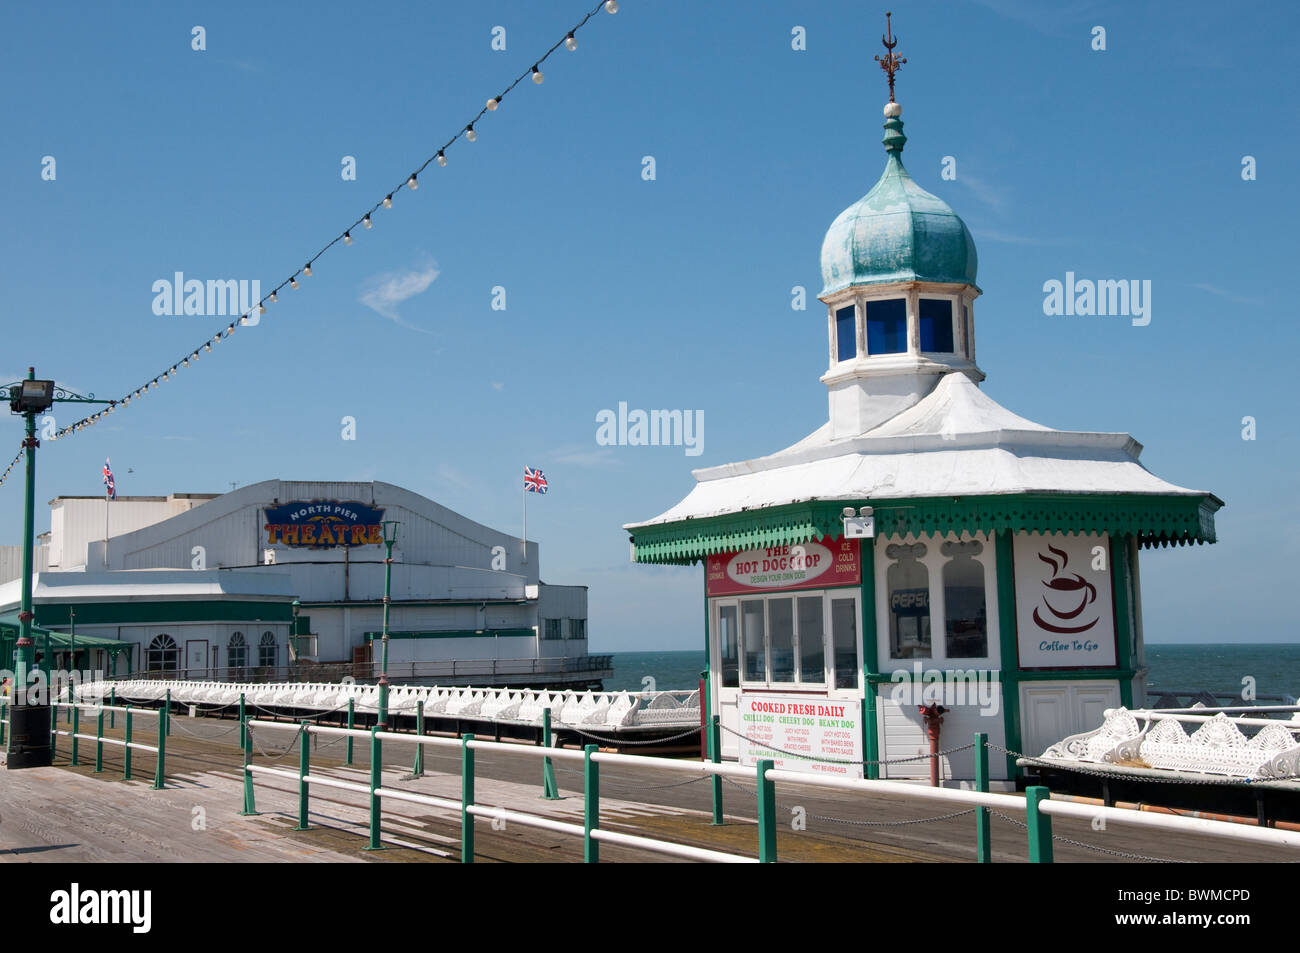 The North Pier atBlackpool on the coast of Lancashire in Northern England - Stock Image